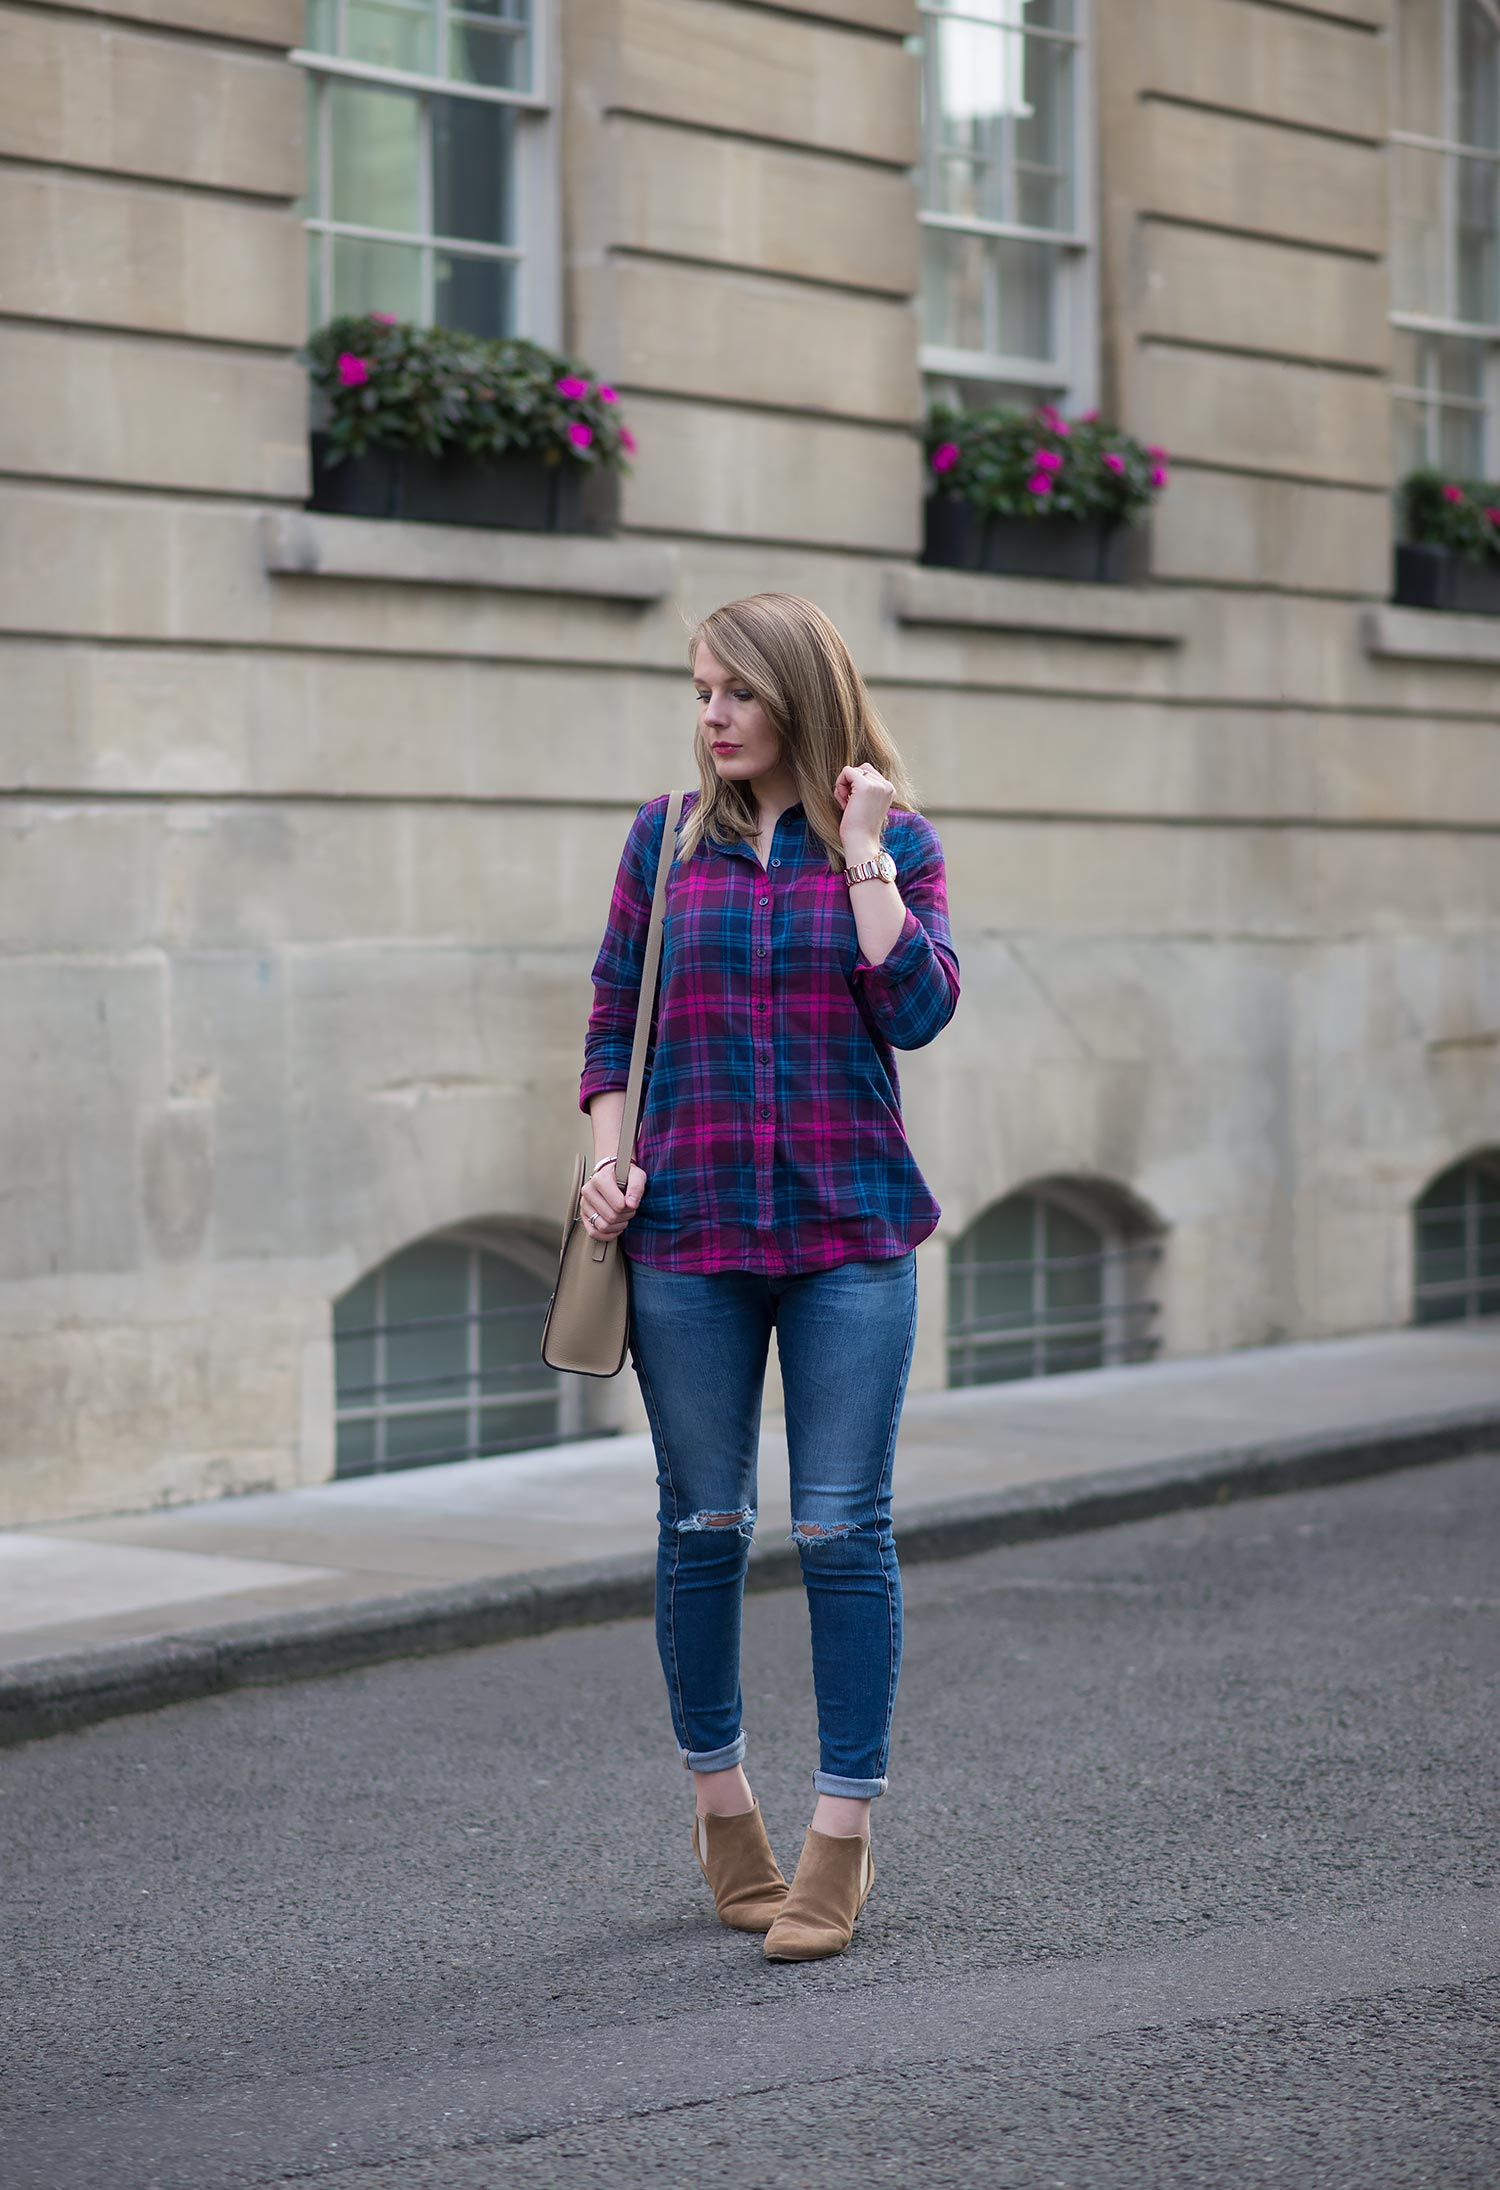 c5e379d02f1c A casual look for spring for me would be a plaid